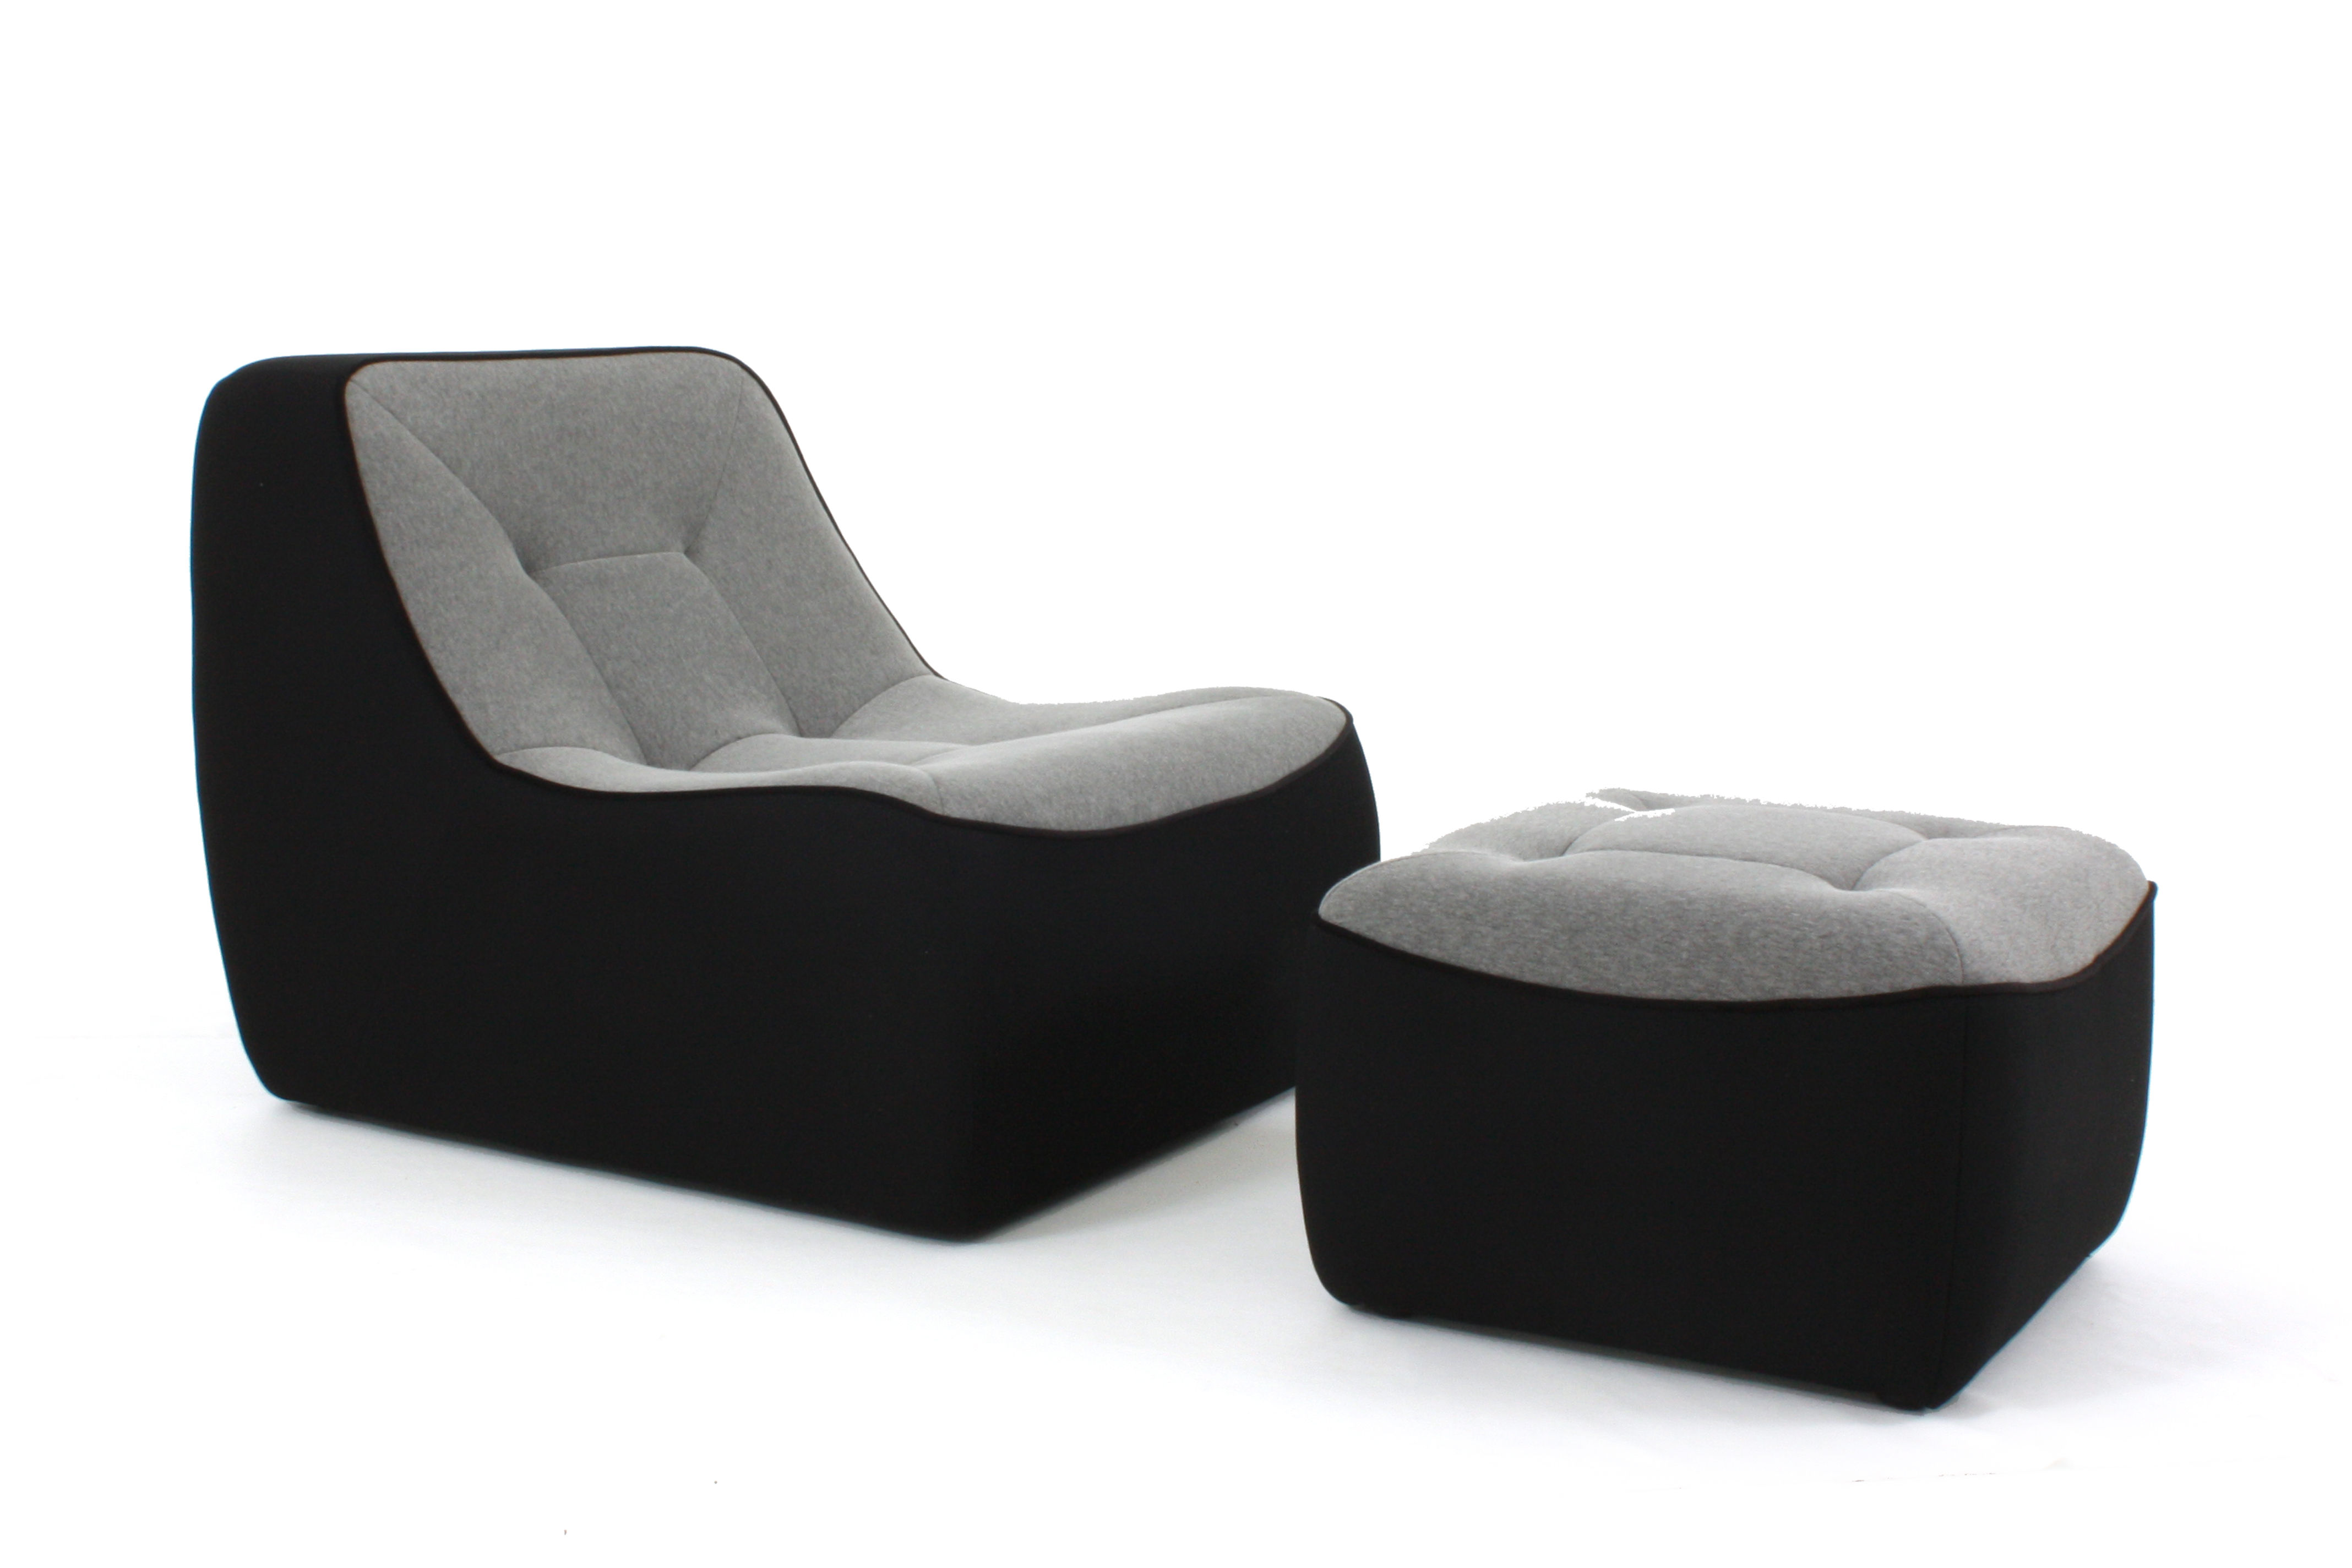 Pouf tchubby by ora ito noir gris chin passepoil noir for Canape dunlopillo ora ito